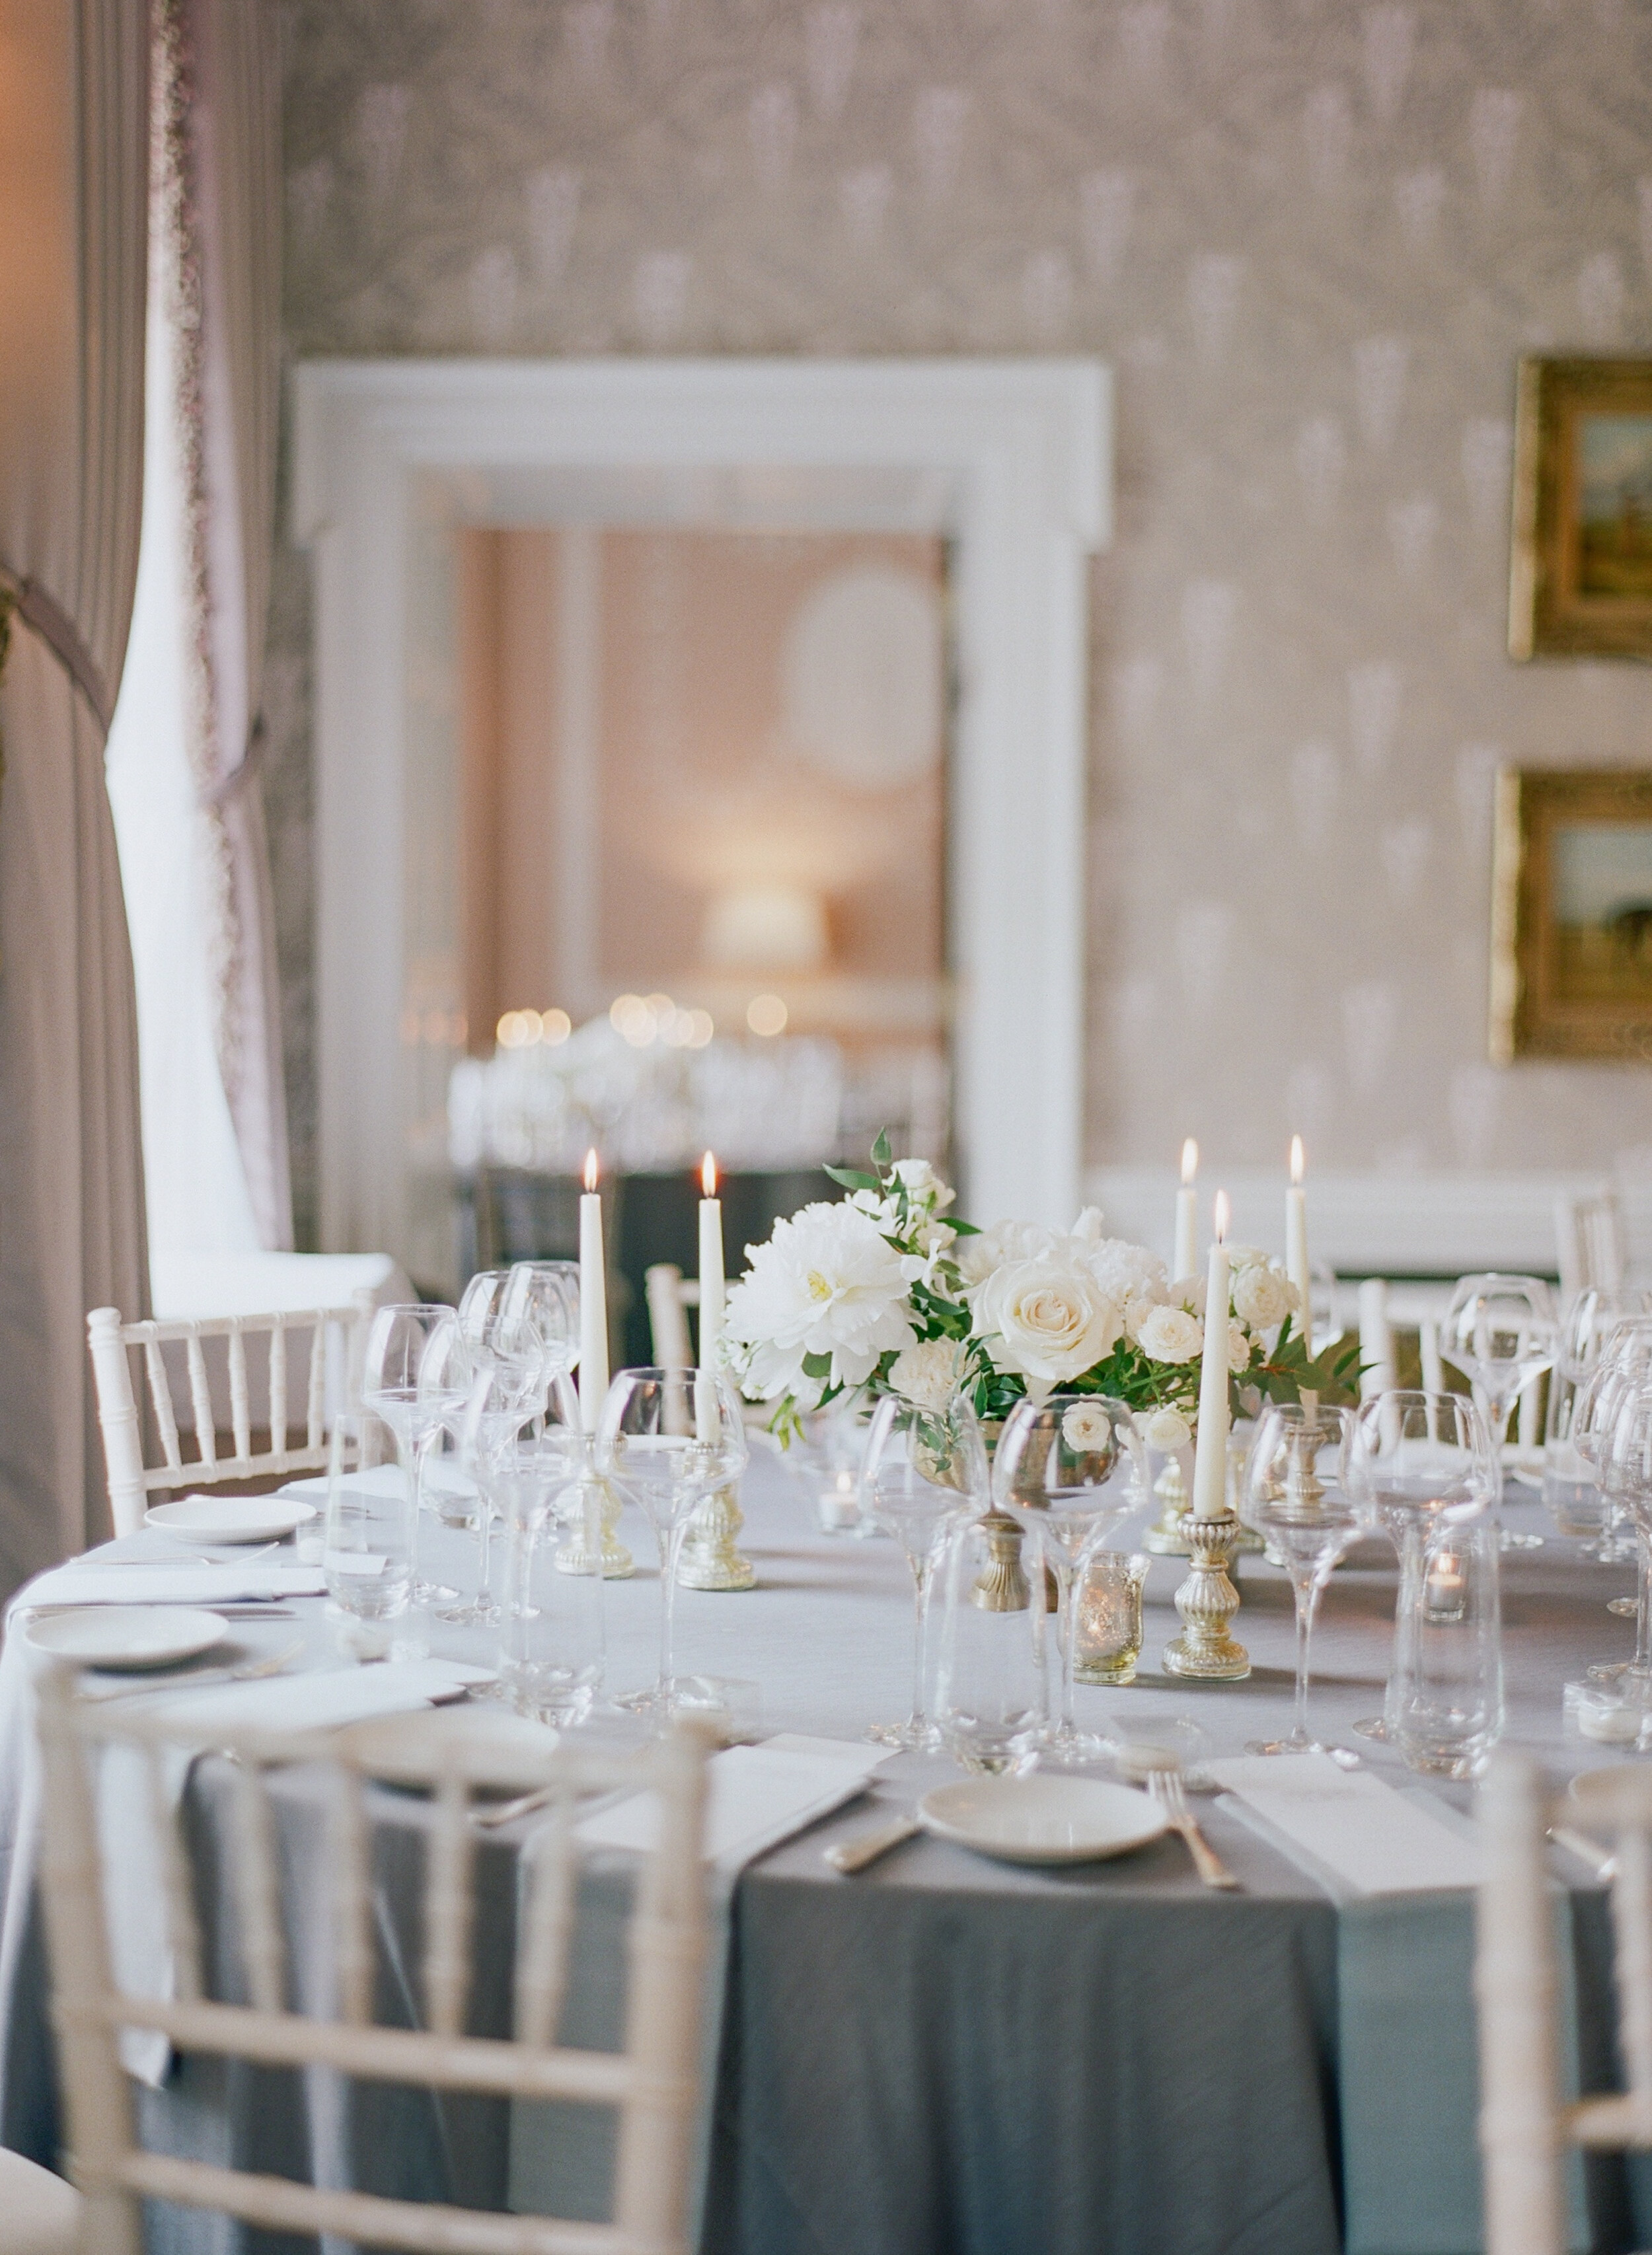 Thank you Kelly and Paddy for trusting in me to create elegant florals to elevate the aesthetic of your wedding day.